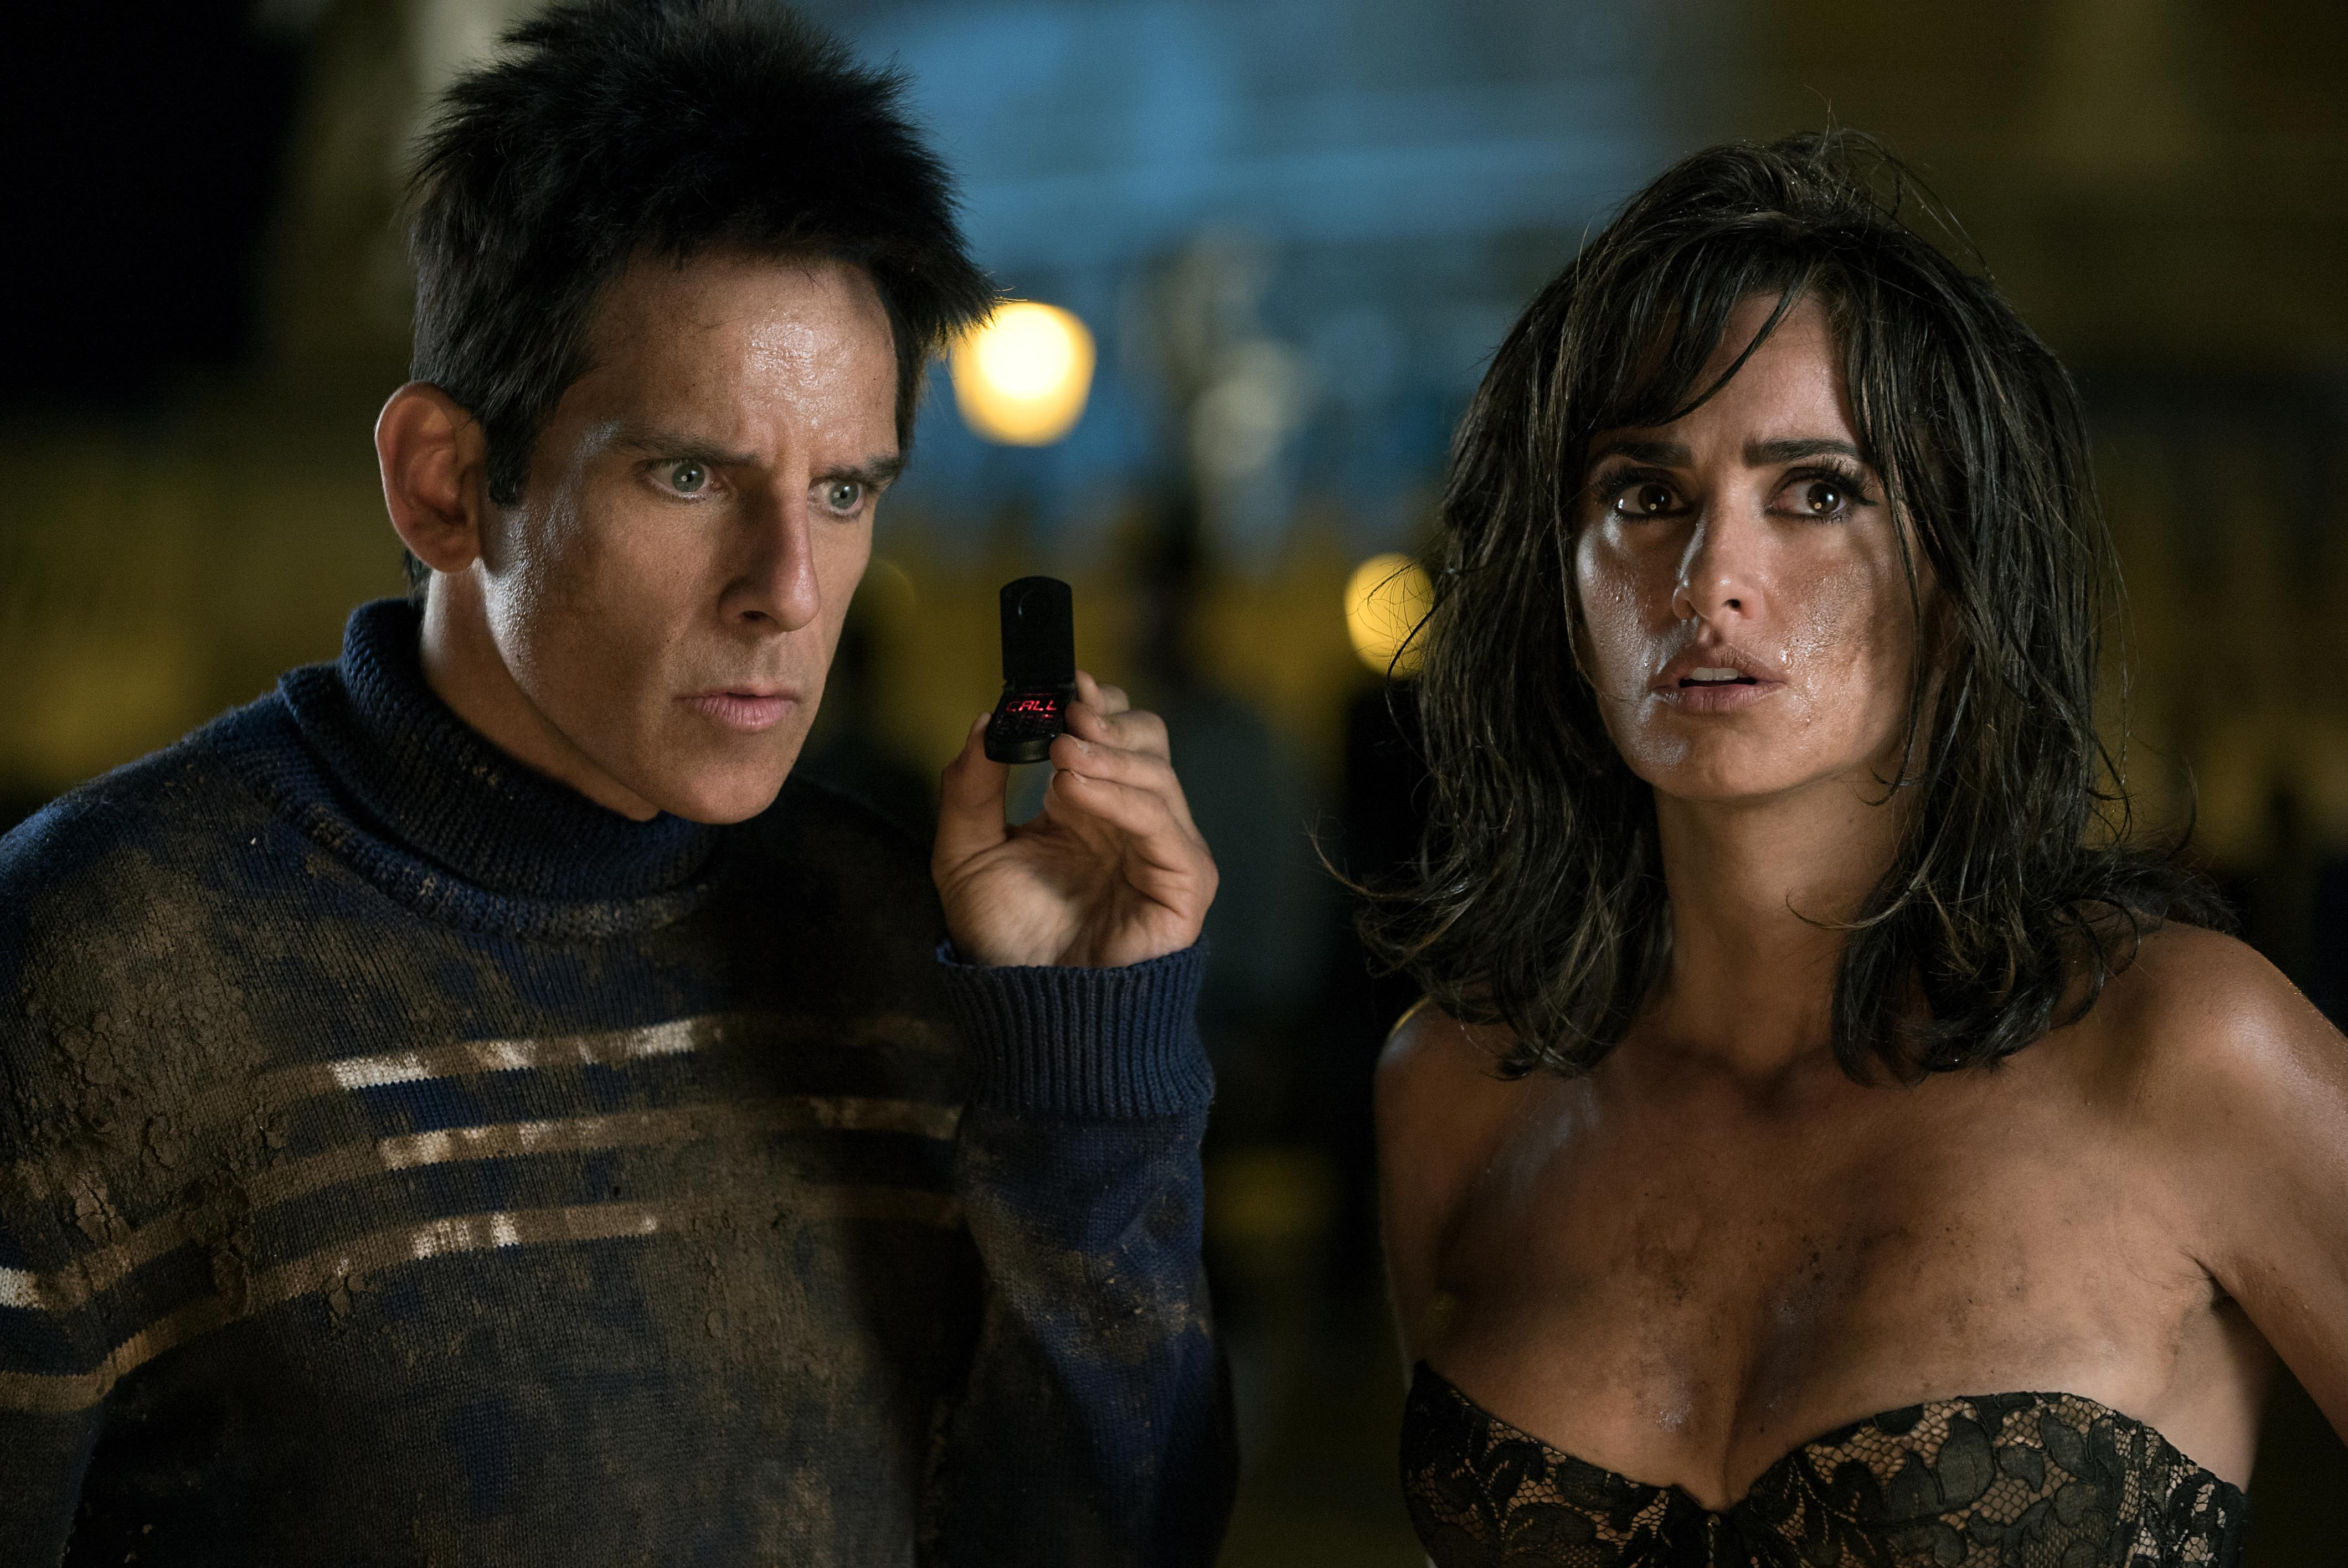 Left to right: Ben Stiller plays Derek Zoolander and Penelope Cruz plays Valentina Valencia in Zoolander No. 2 from Paramount Pictures.